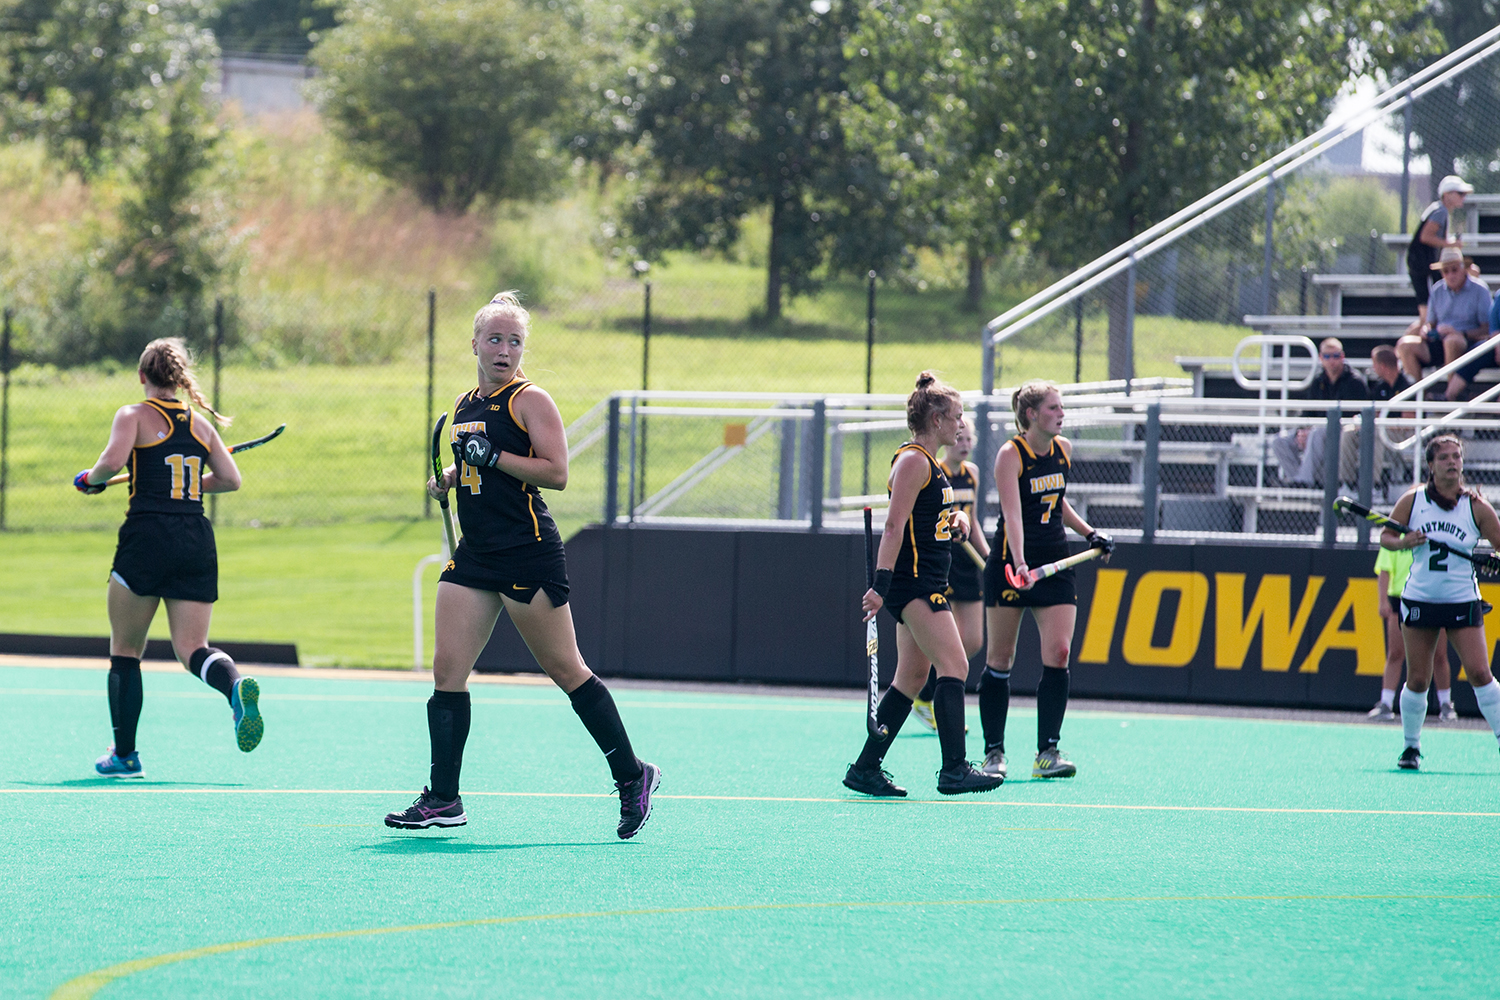 Iowa%27s+Makenna+Grewe+recovers+during+a+field+hockey+match+between+Iowa+and+Dartmouth+College+at+Grant+Field+on+Friday%2C+August+31%2C+2018.+The+Hawkeyes+shut+out+the+Big+Green%2C+6-0.